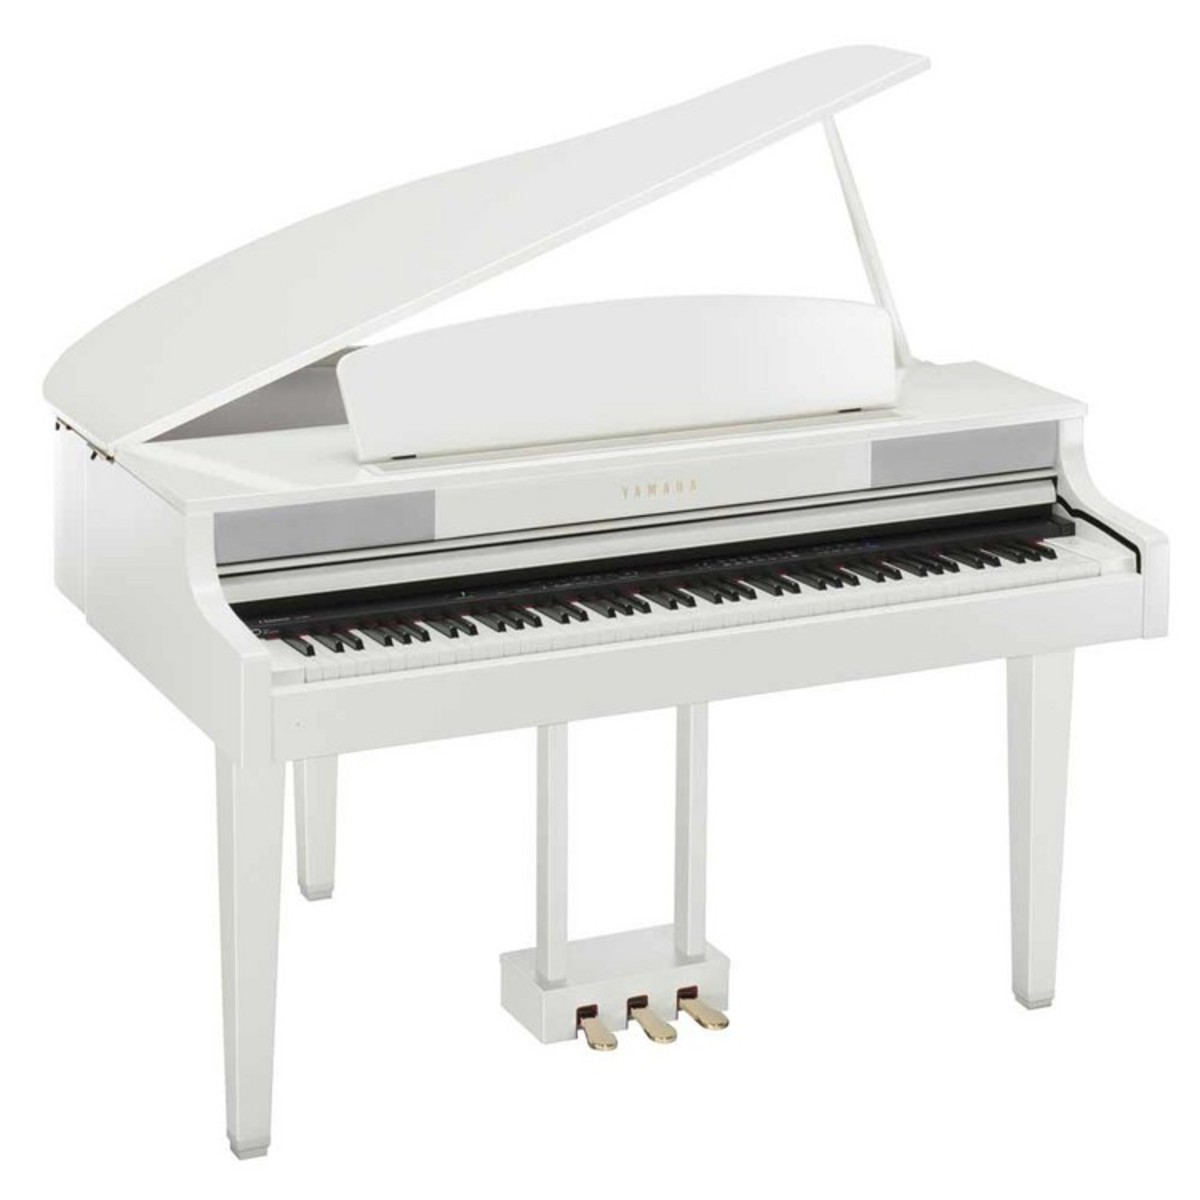 Disc yamaha clp465 grand piano polished white with for White yamaha piano